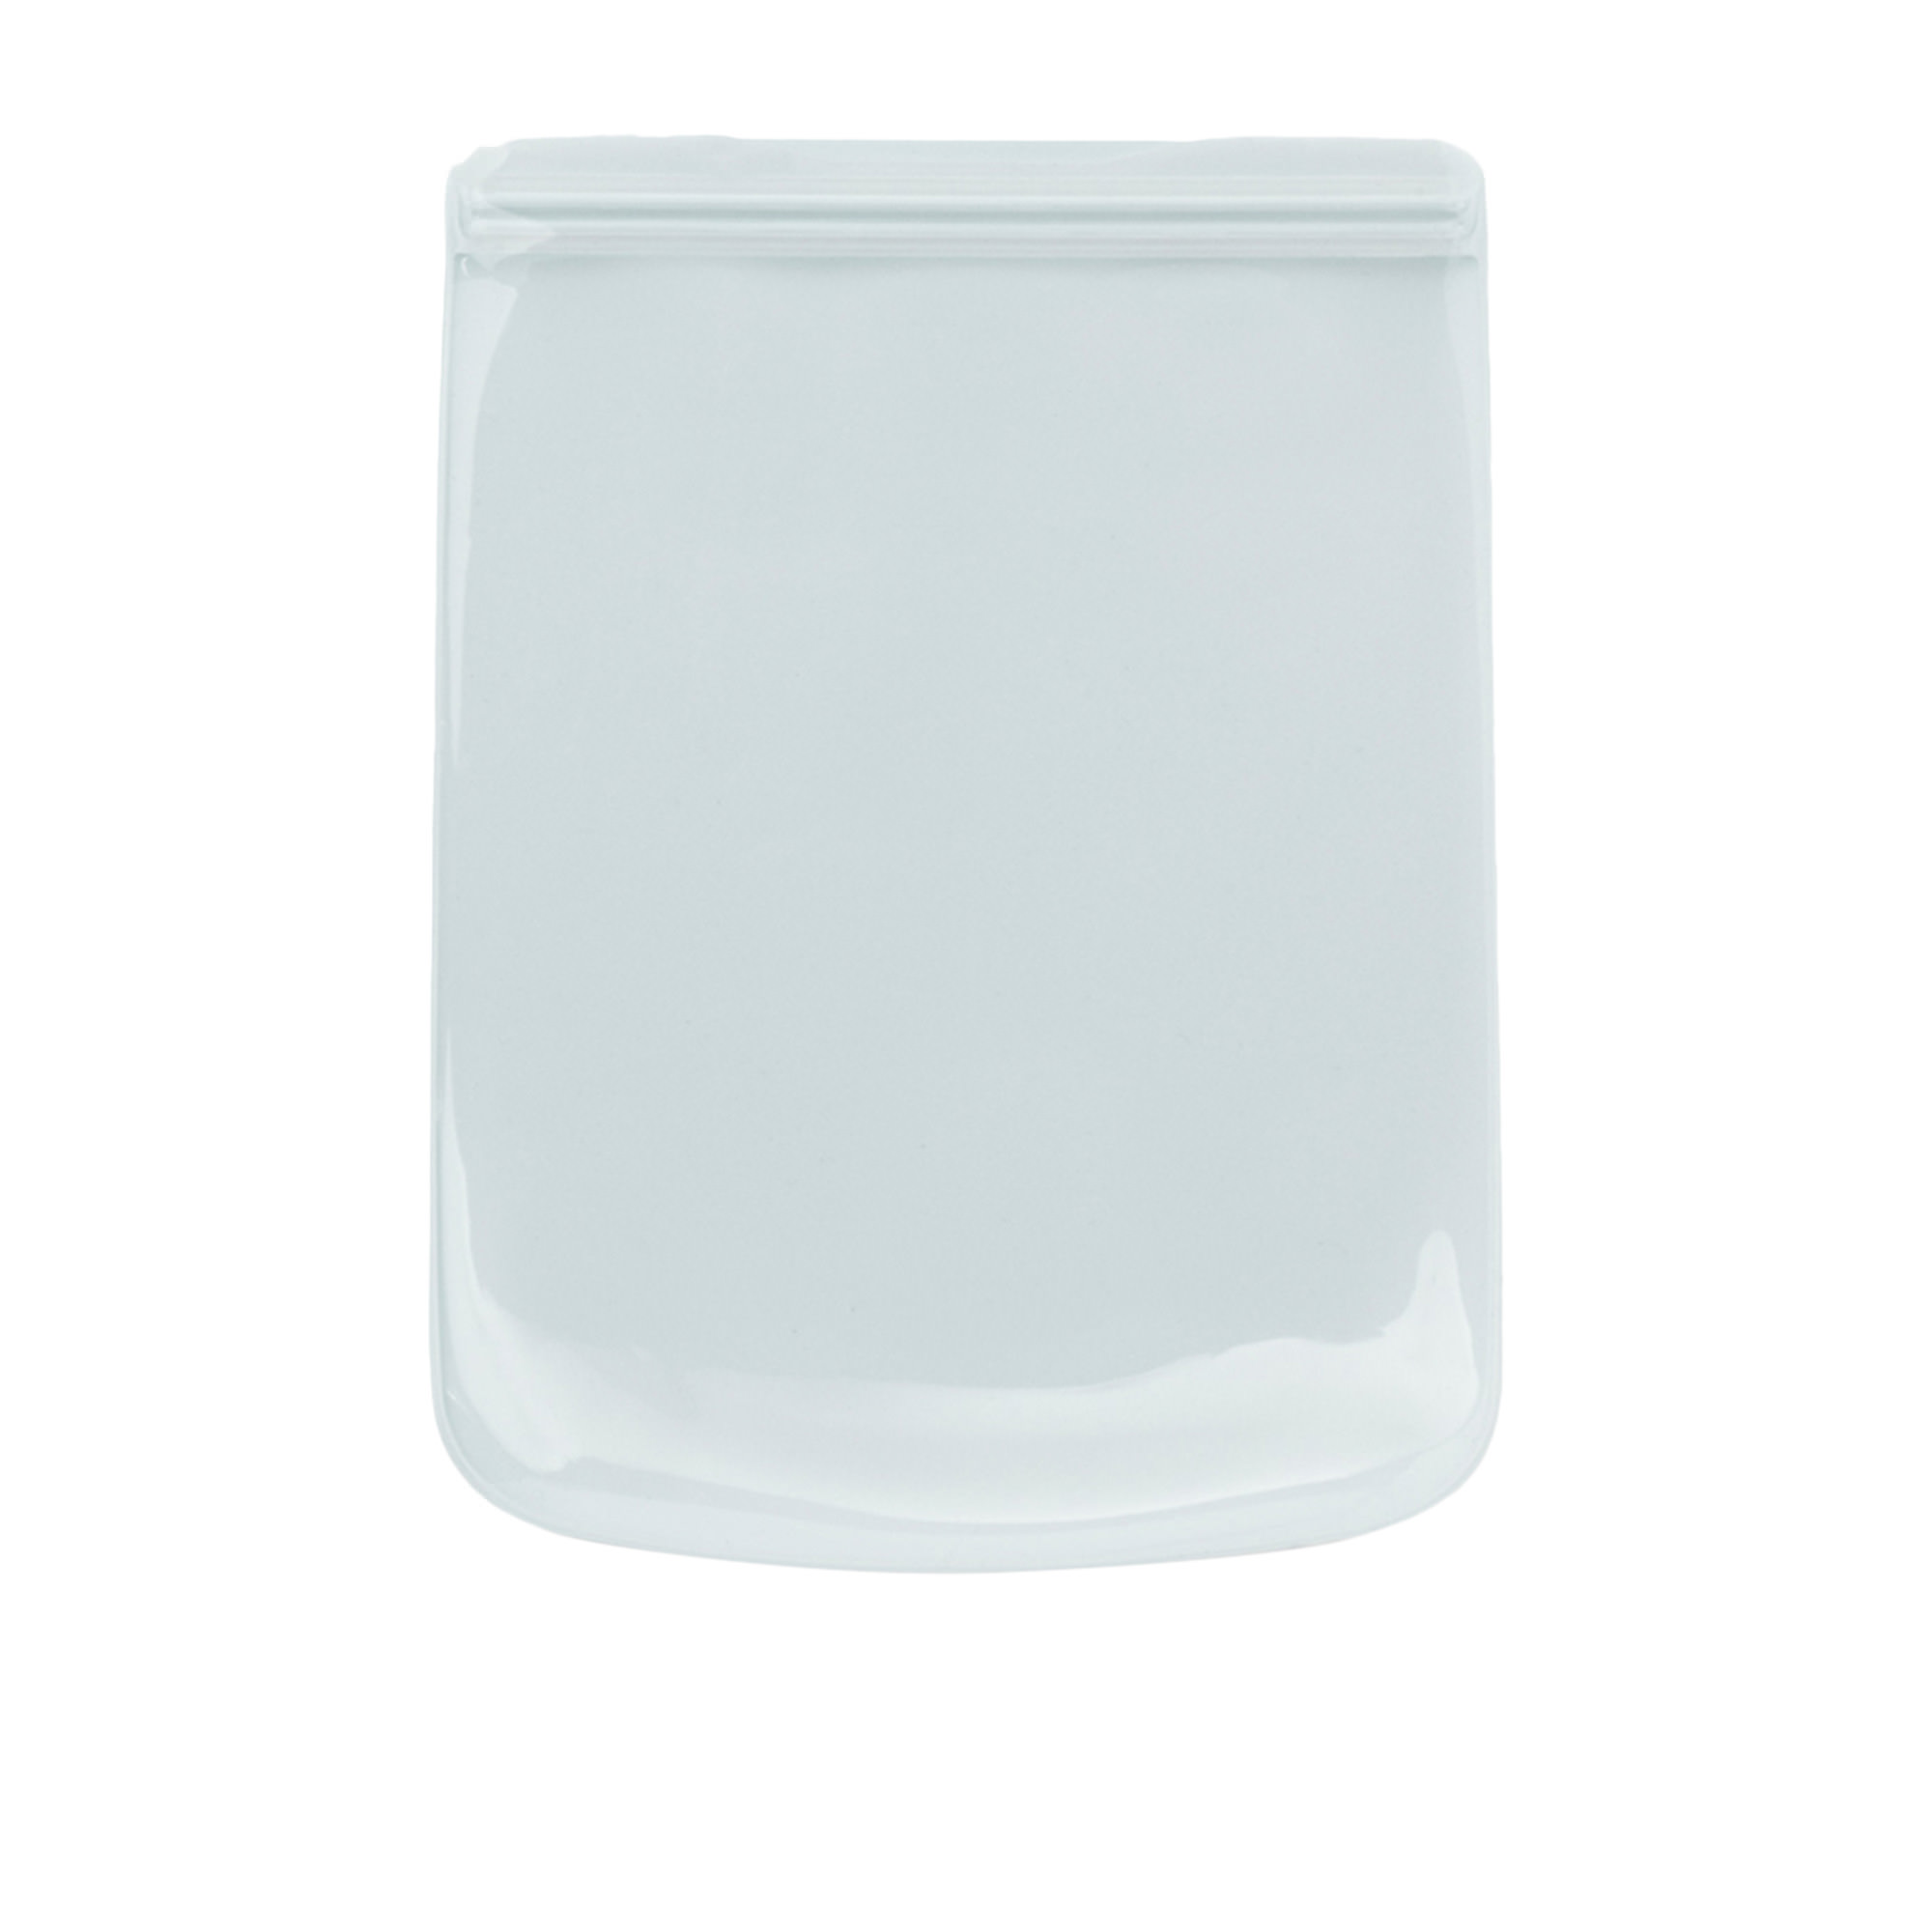 W&P Porter Reusable Silicone Bag 1.4L Mint